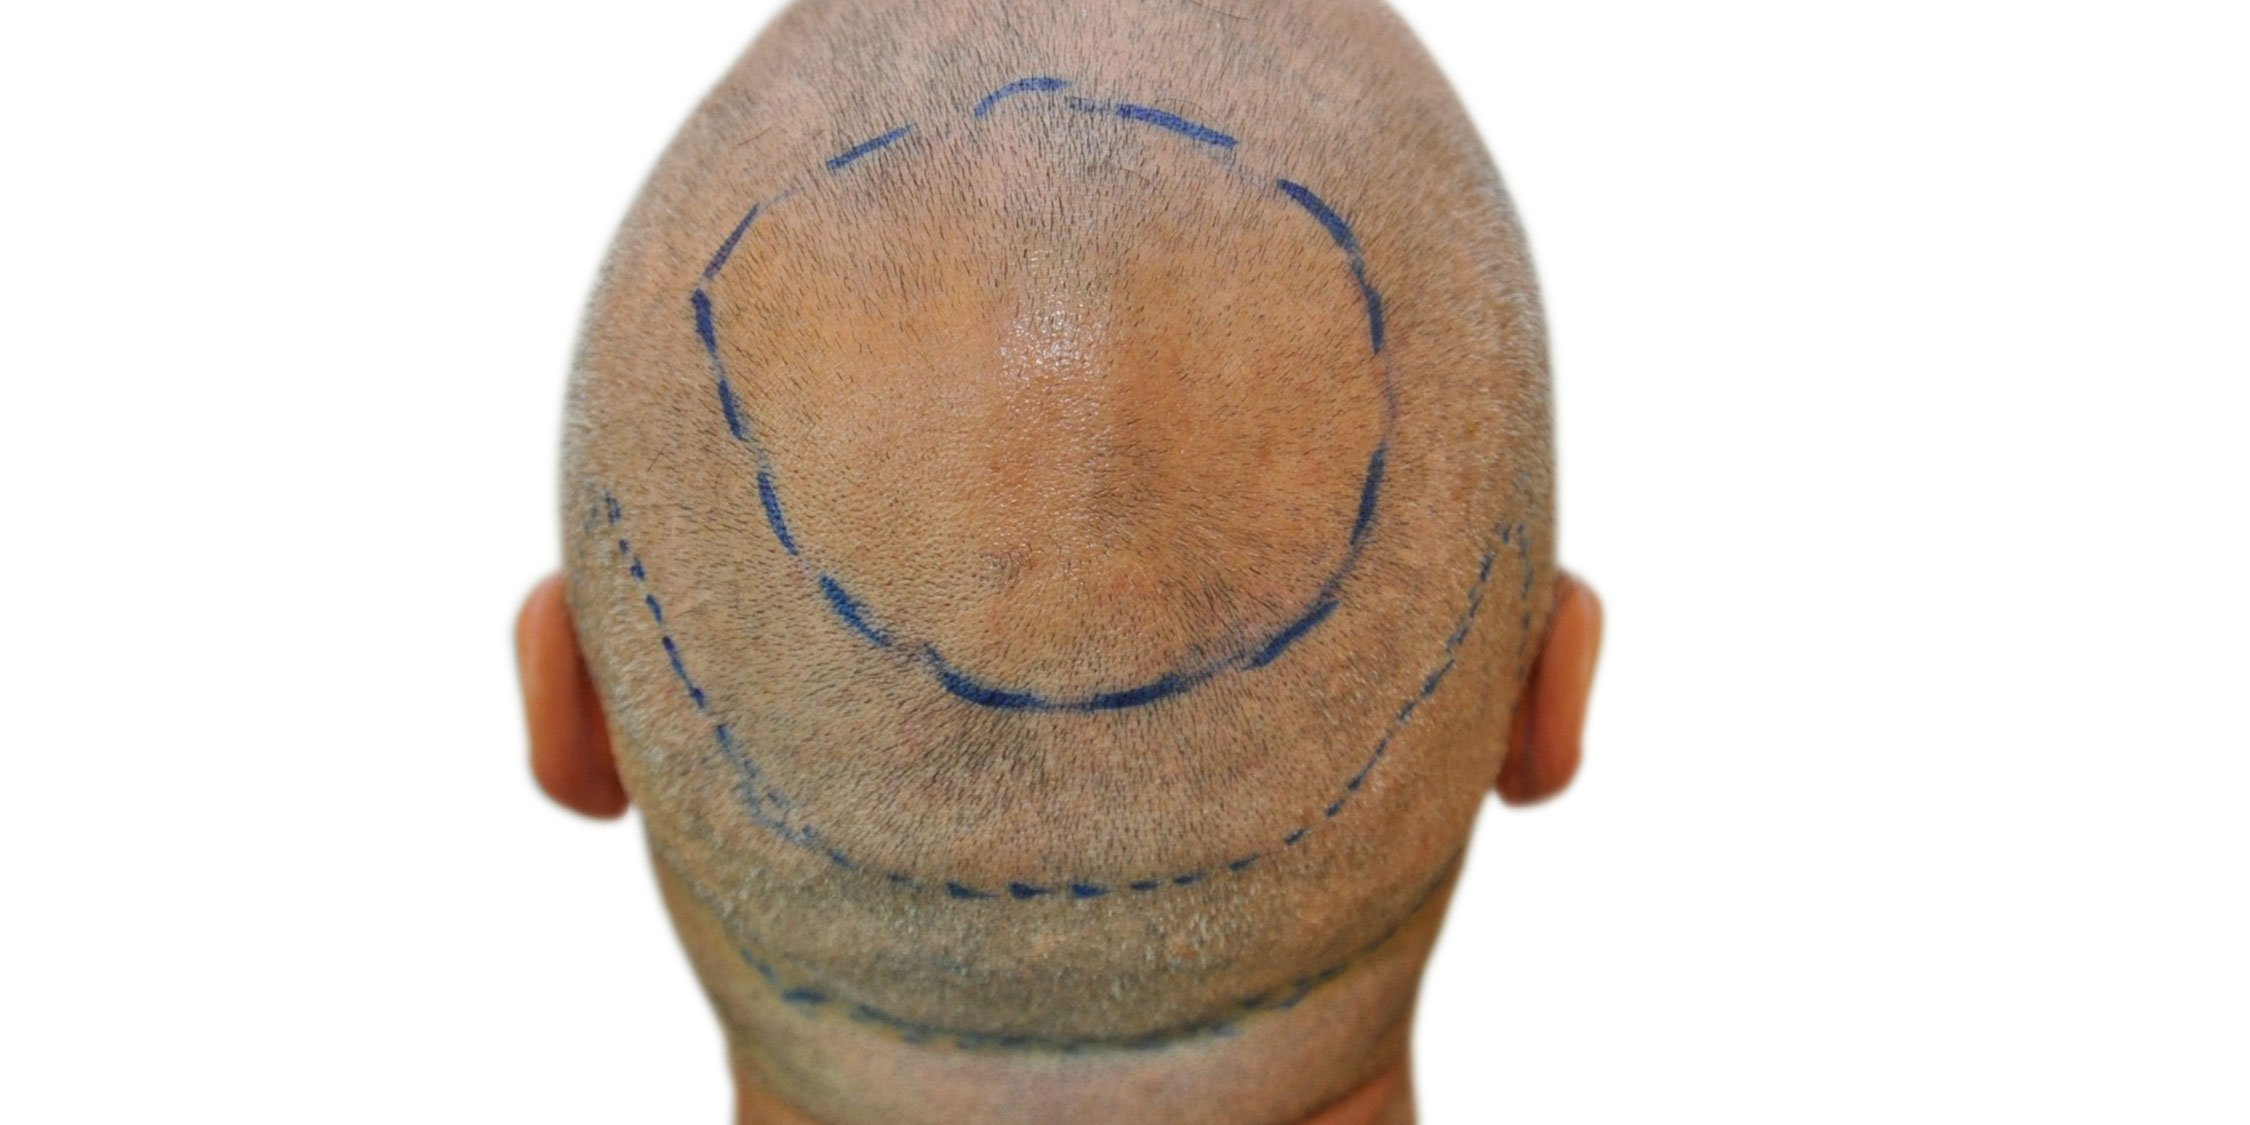 vademecum post hair transplant